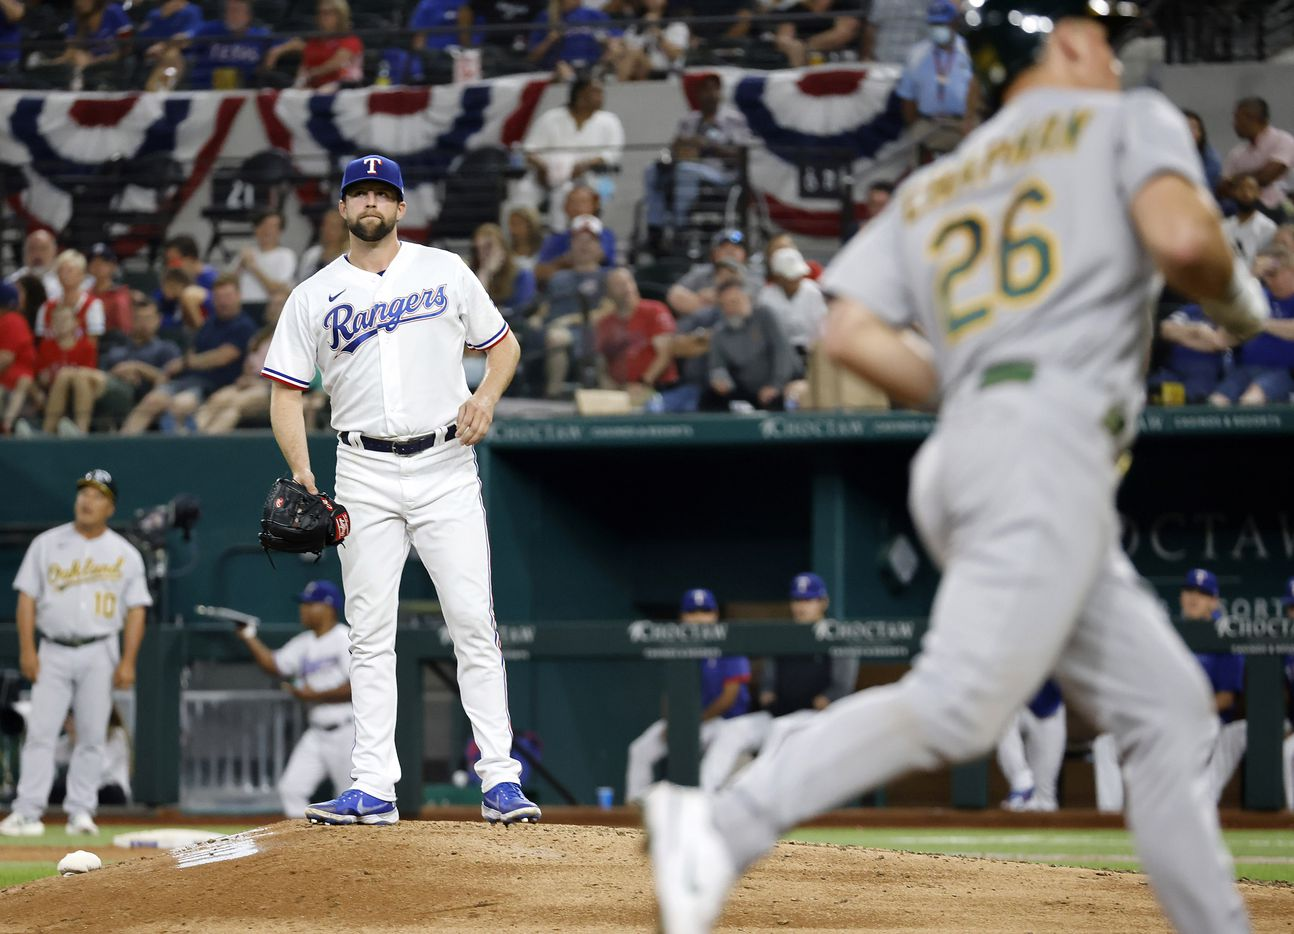 Texas Rangers starting pitcher Jordan Lyles (24) reacts after Oakland Athletics batter Matt Chapman (26) hit a seventh inning solo home run at Globe Life Field in Arlington, Saturday, August 14, 2021. Lyles was pulled from the game after back-to-back homers. (Tom Fox/The Dallas Morning News)